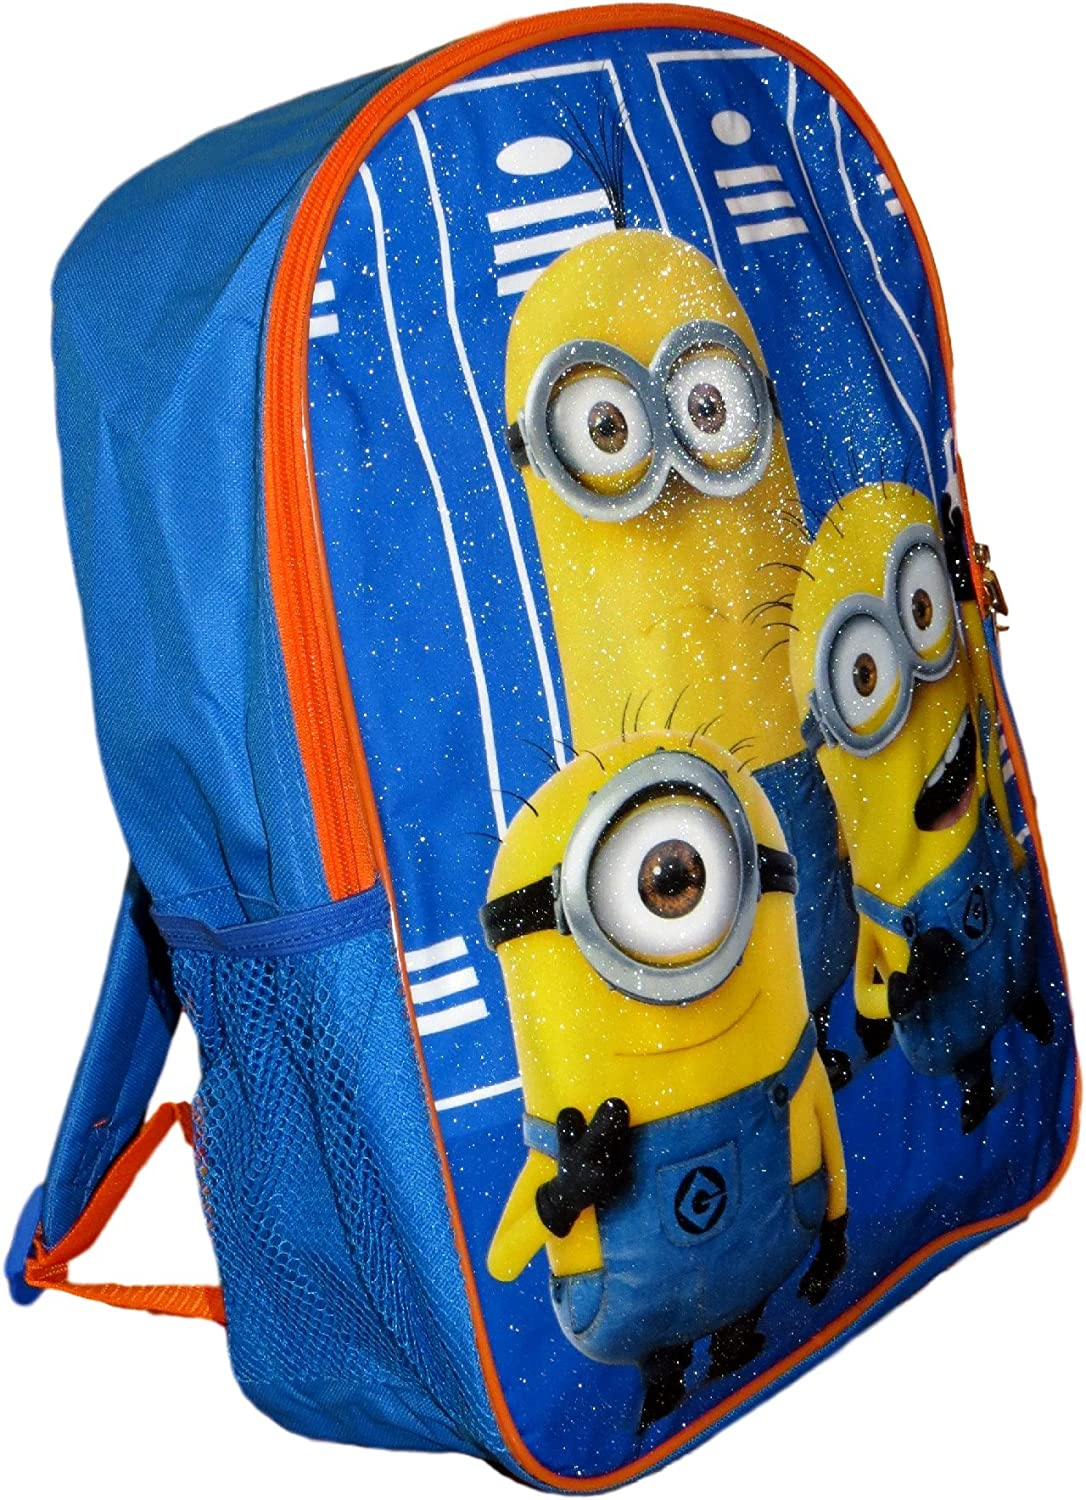 Max 73% OFF Despicable Me Minions Backpack Sale Large 16